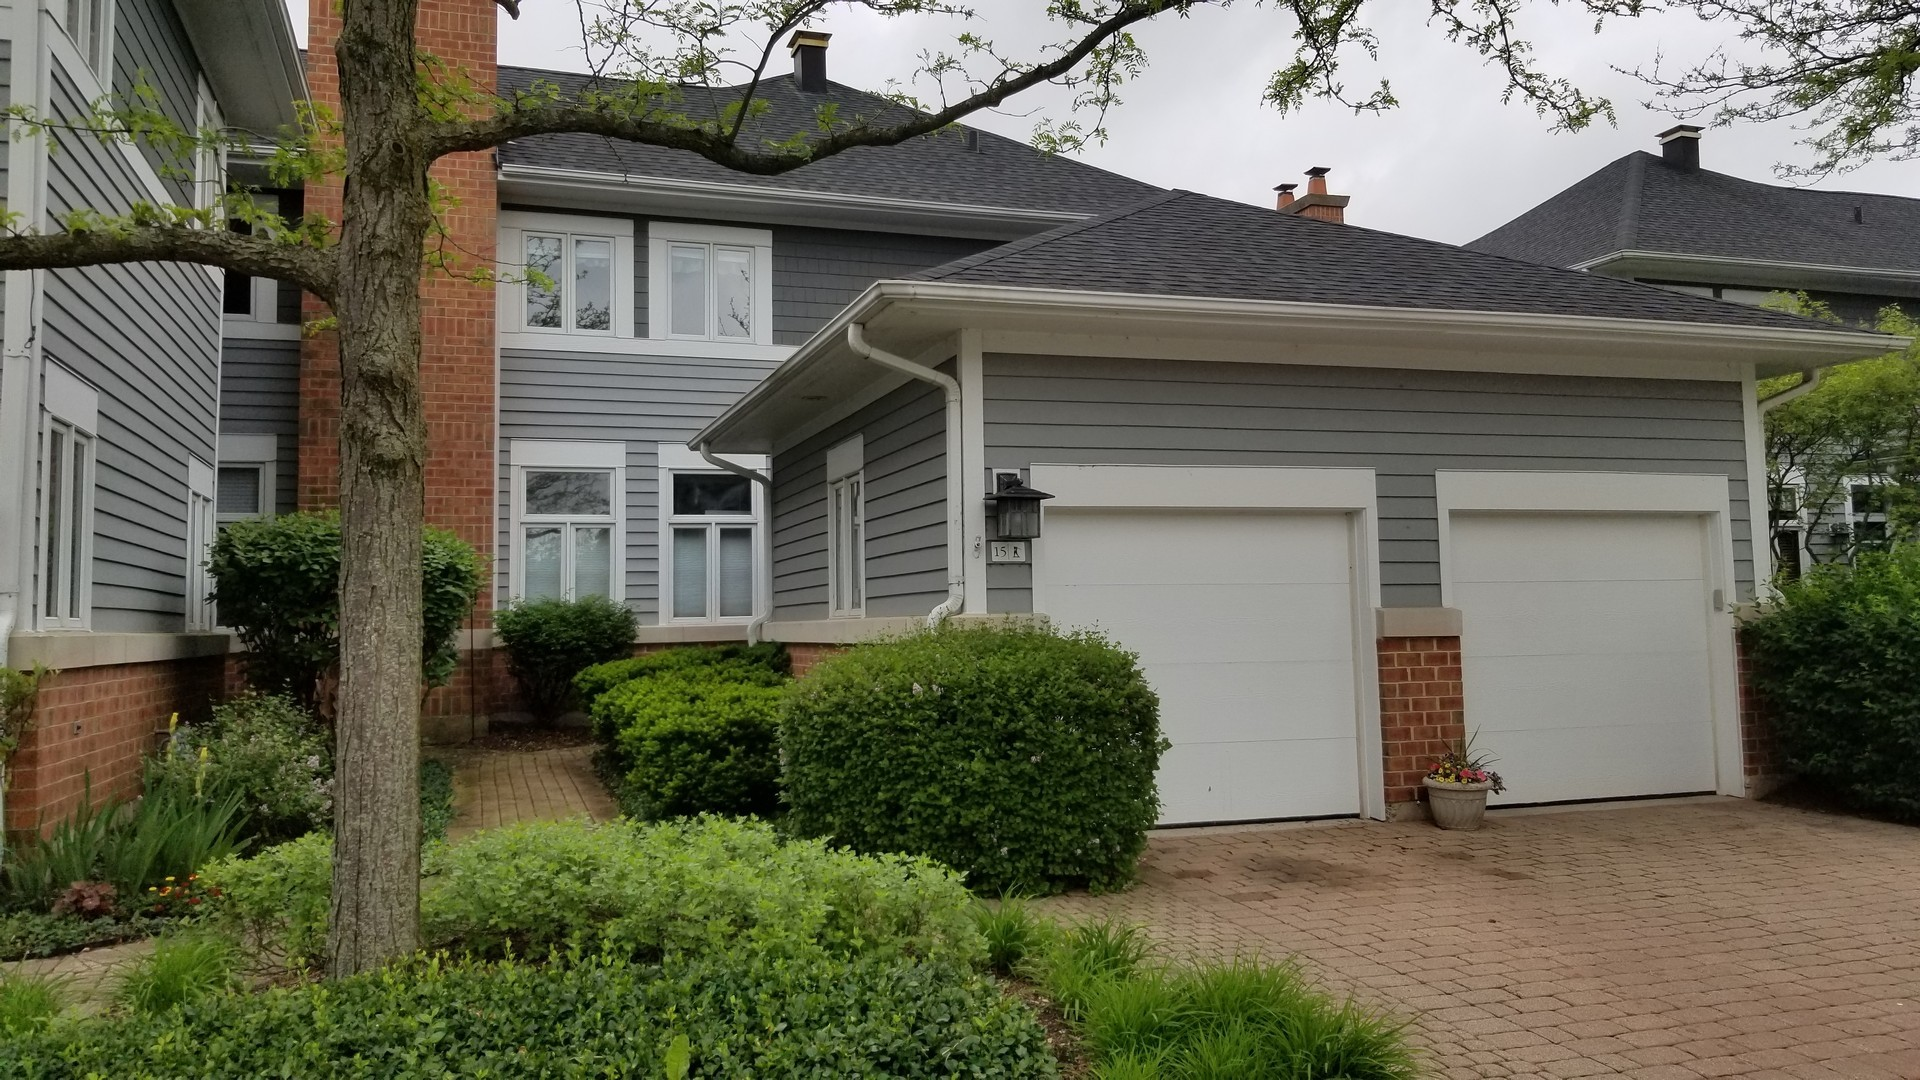 15 Mashie Court, Woodridge, Illinois